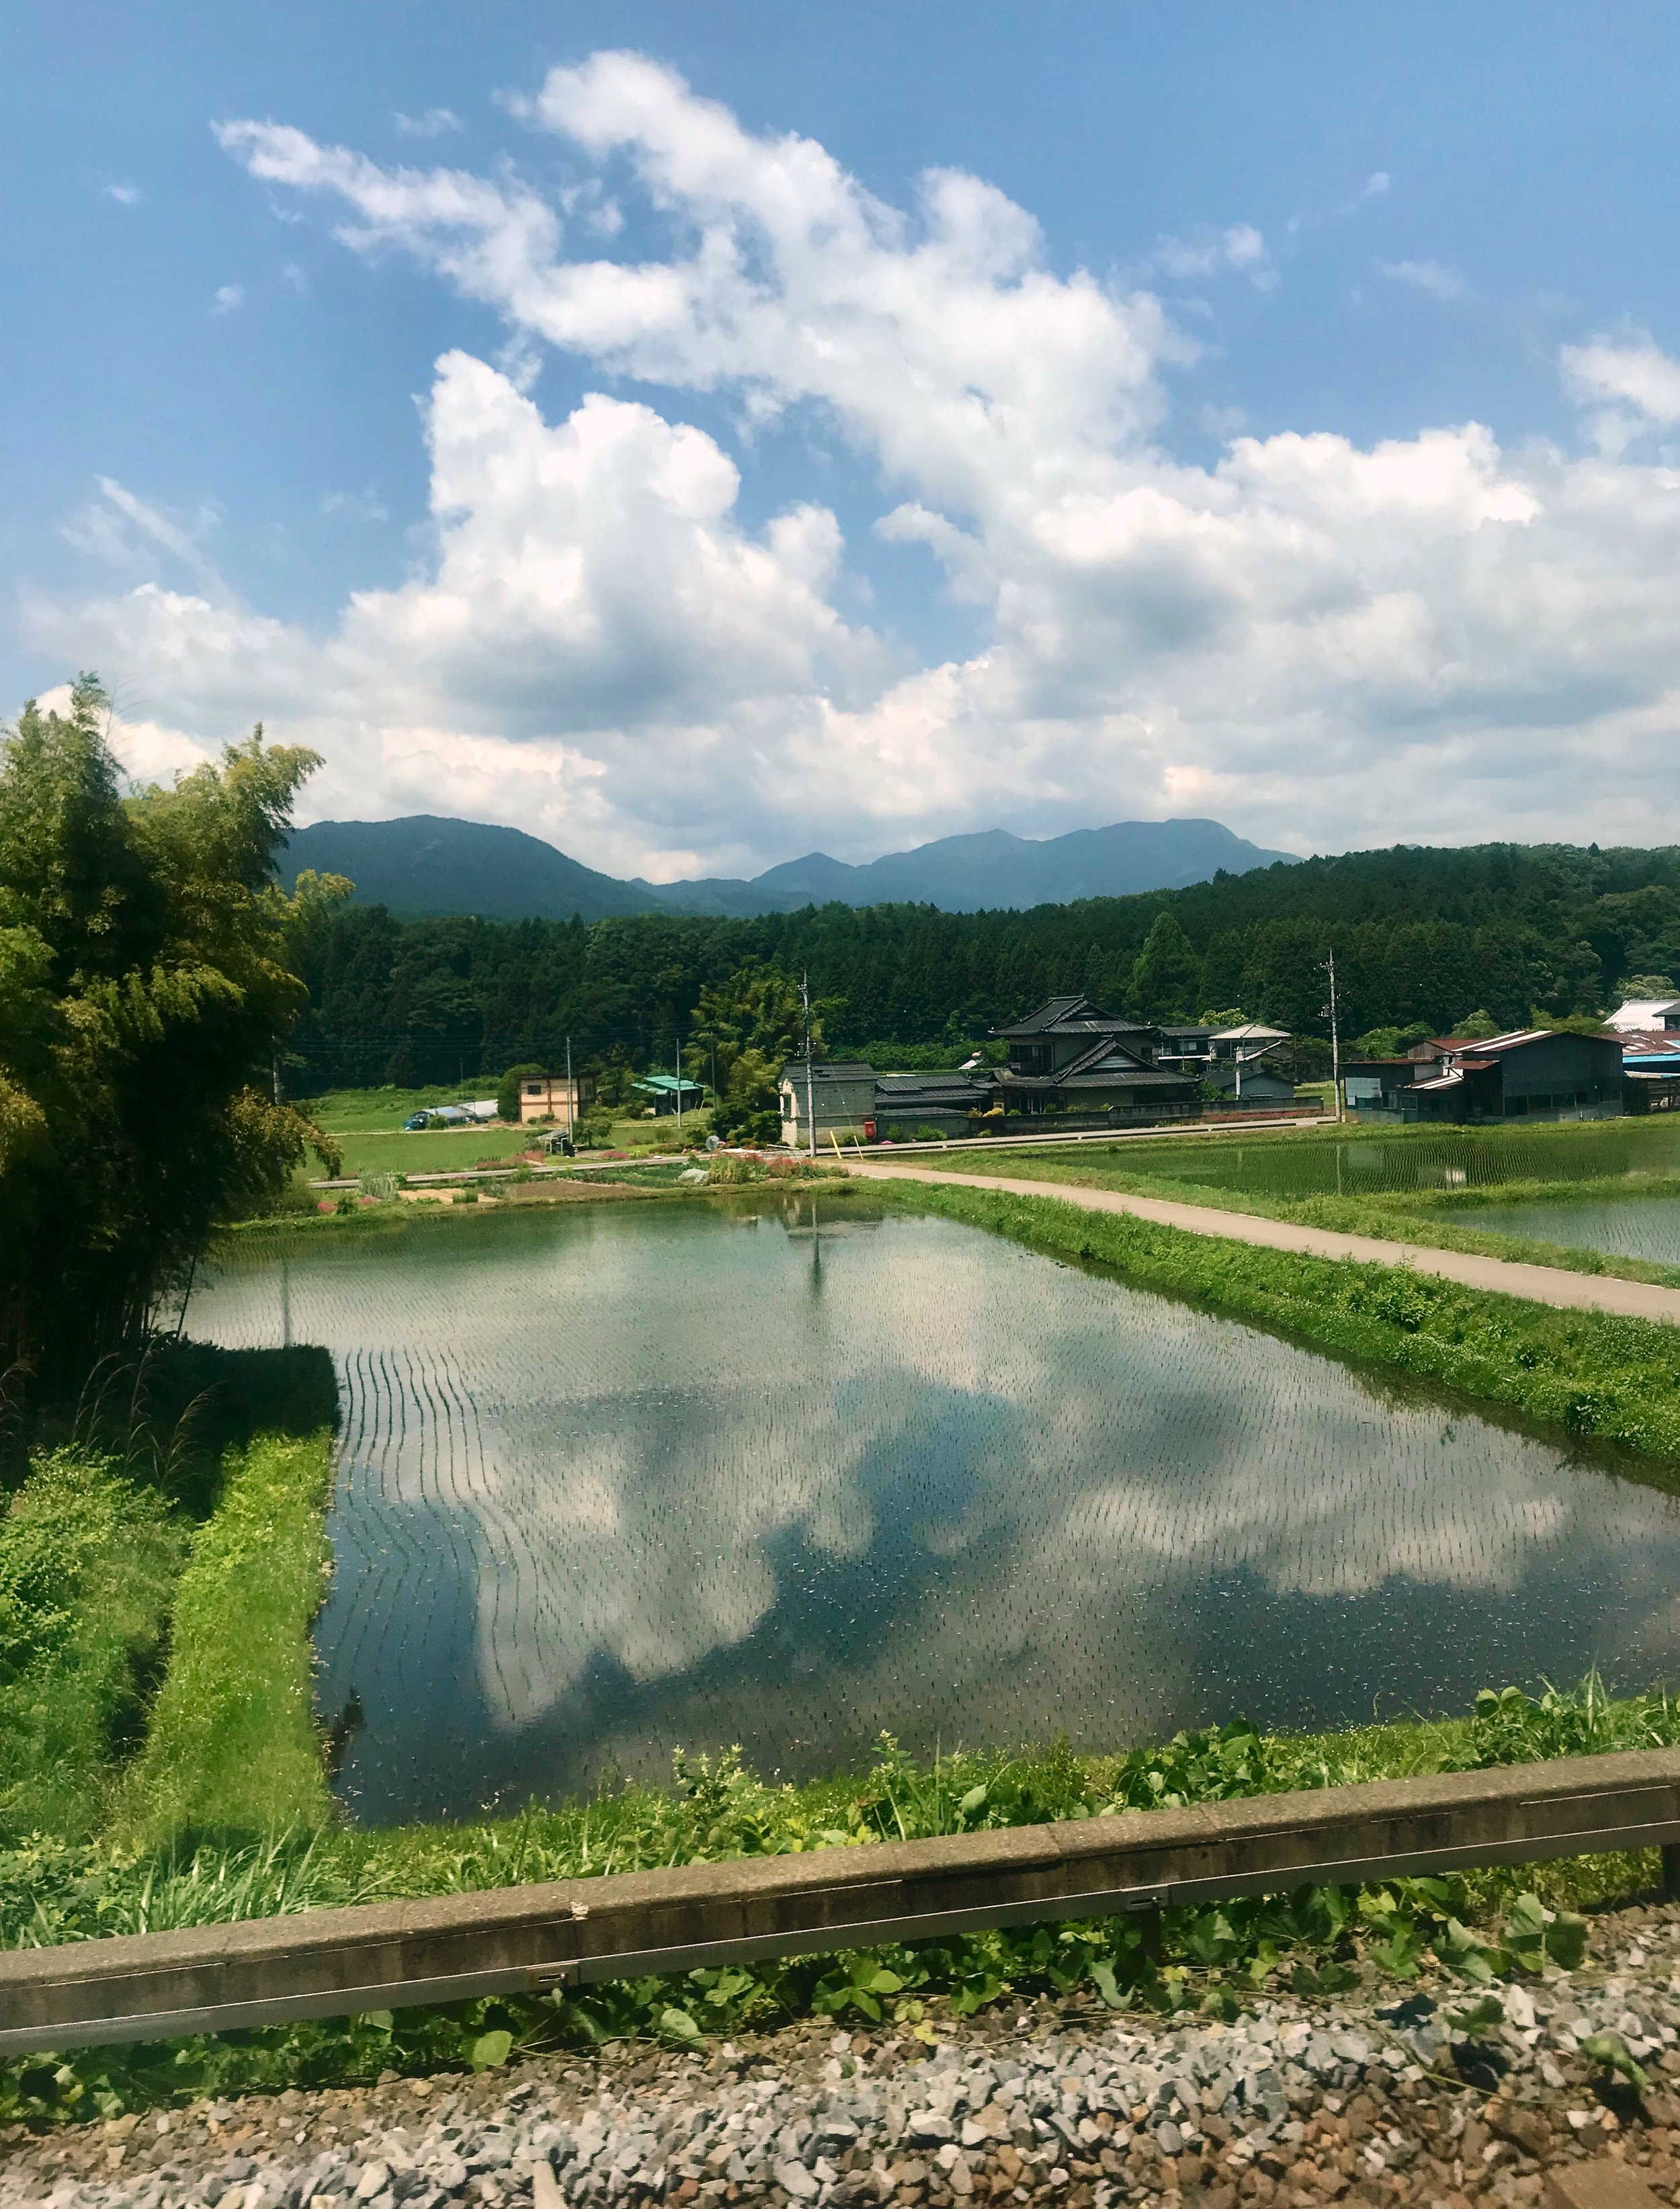 The picturesque view outside my train window in transit from Tokyo to Kanuma, Japan in June 2018.